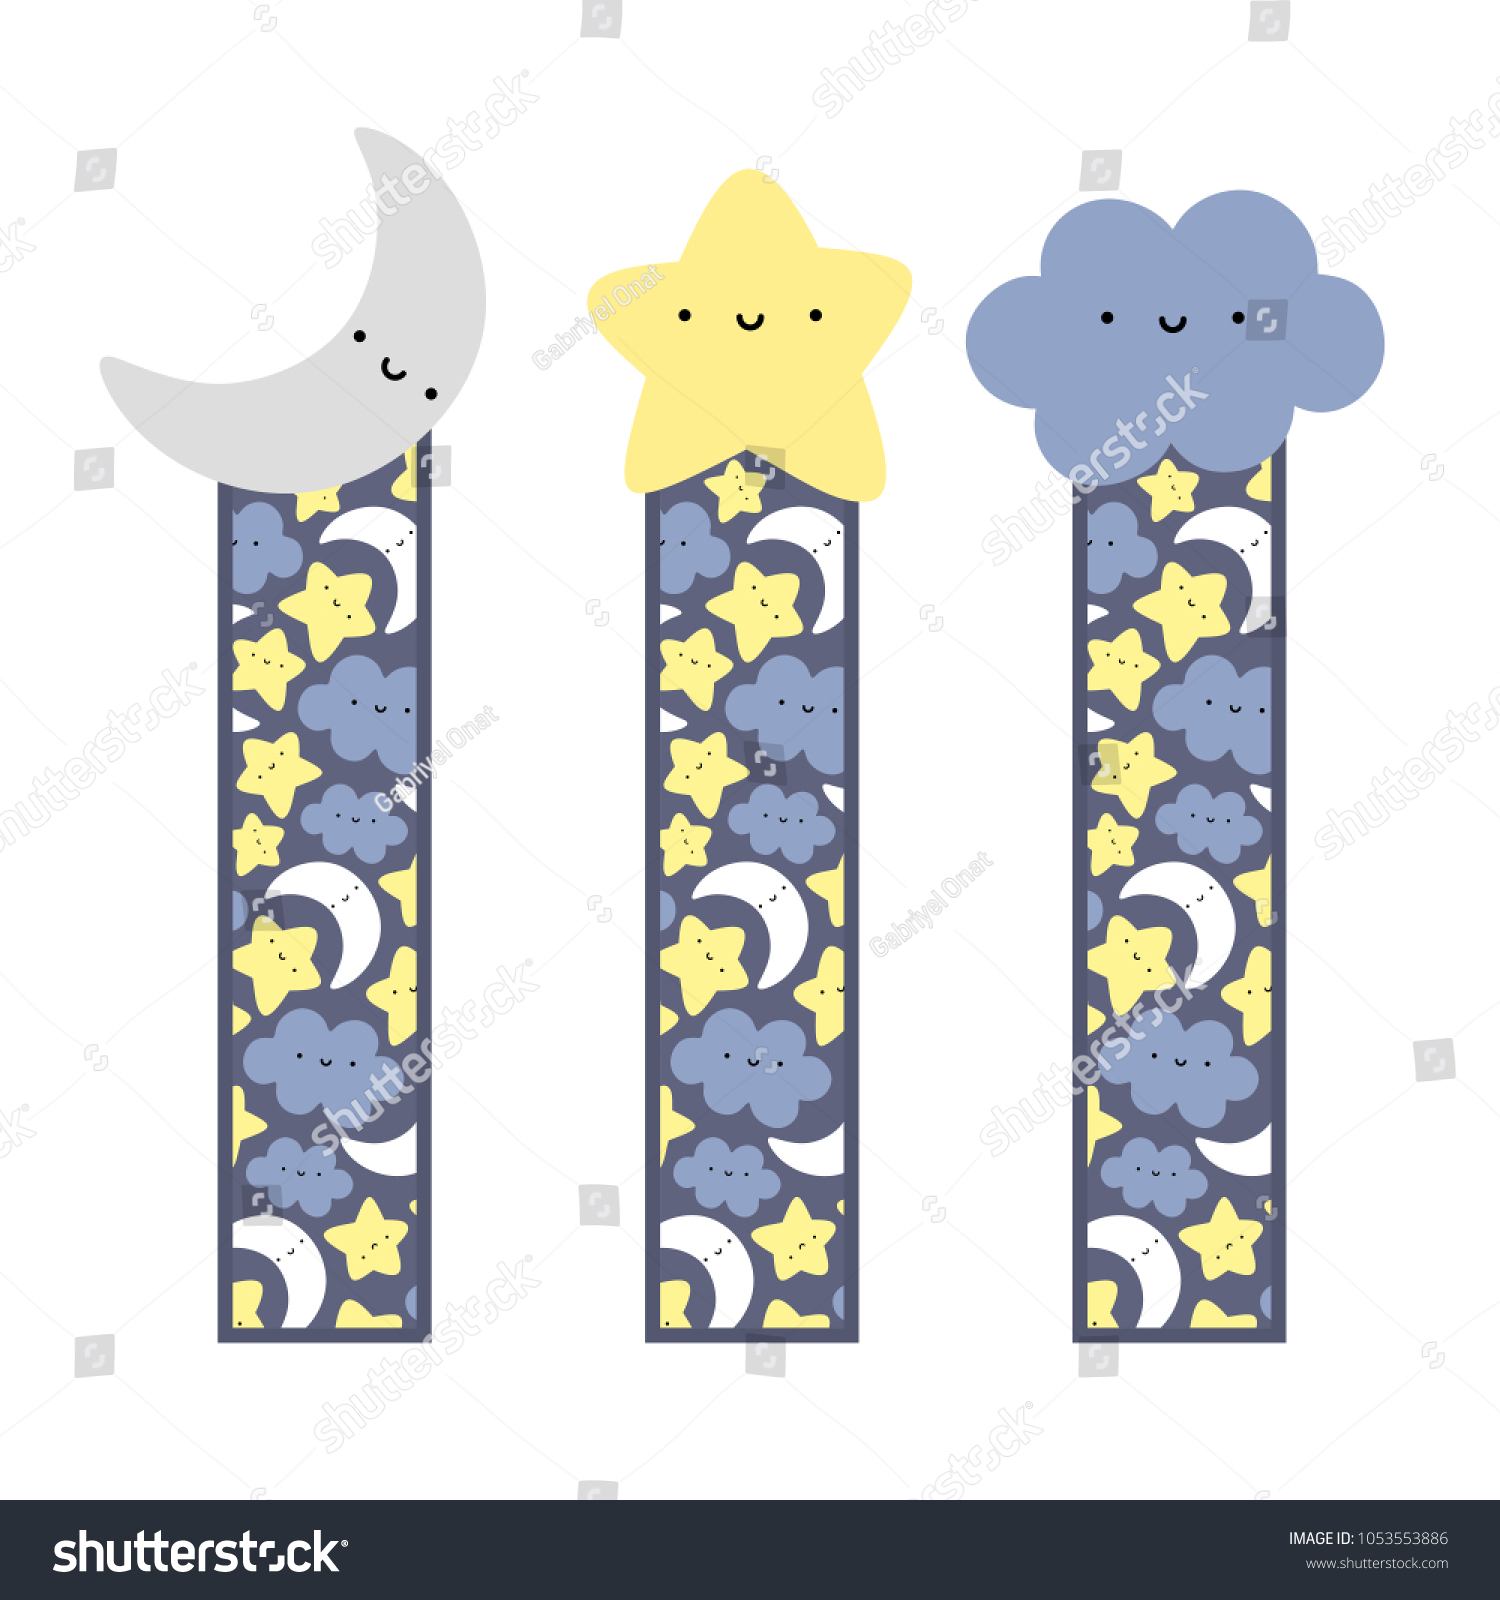 picture regarding Cute Bookmarks Printable named Lovable Encounter Moon Star Cloud Bookmarks Inventory Vector (Royalty